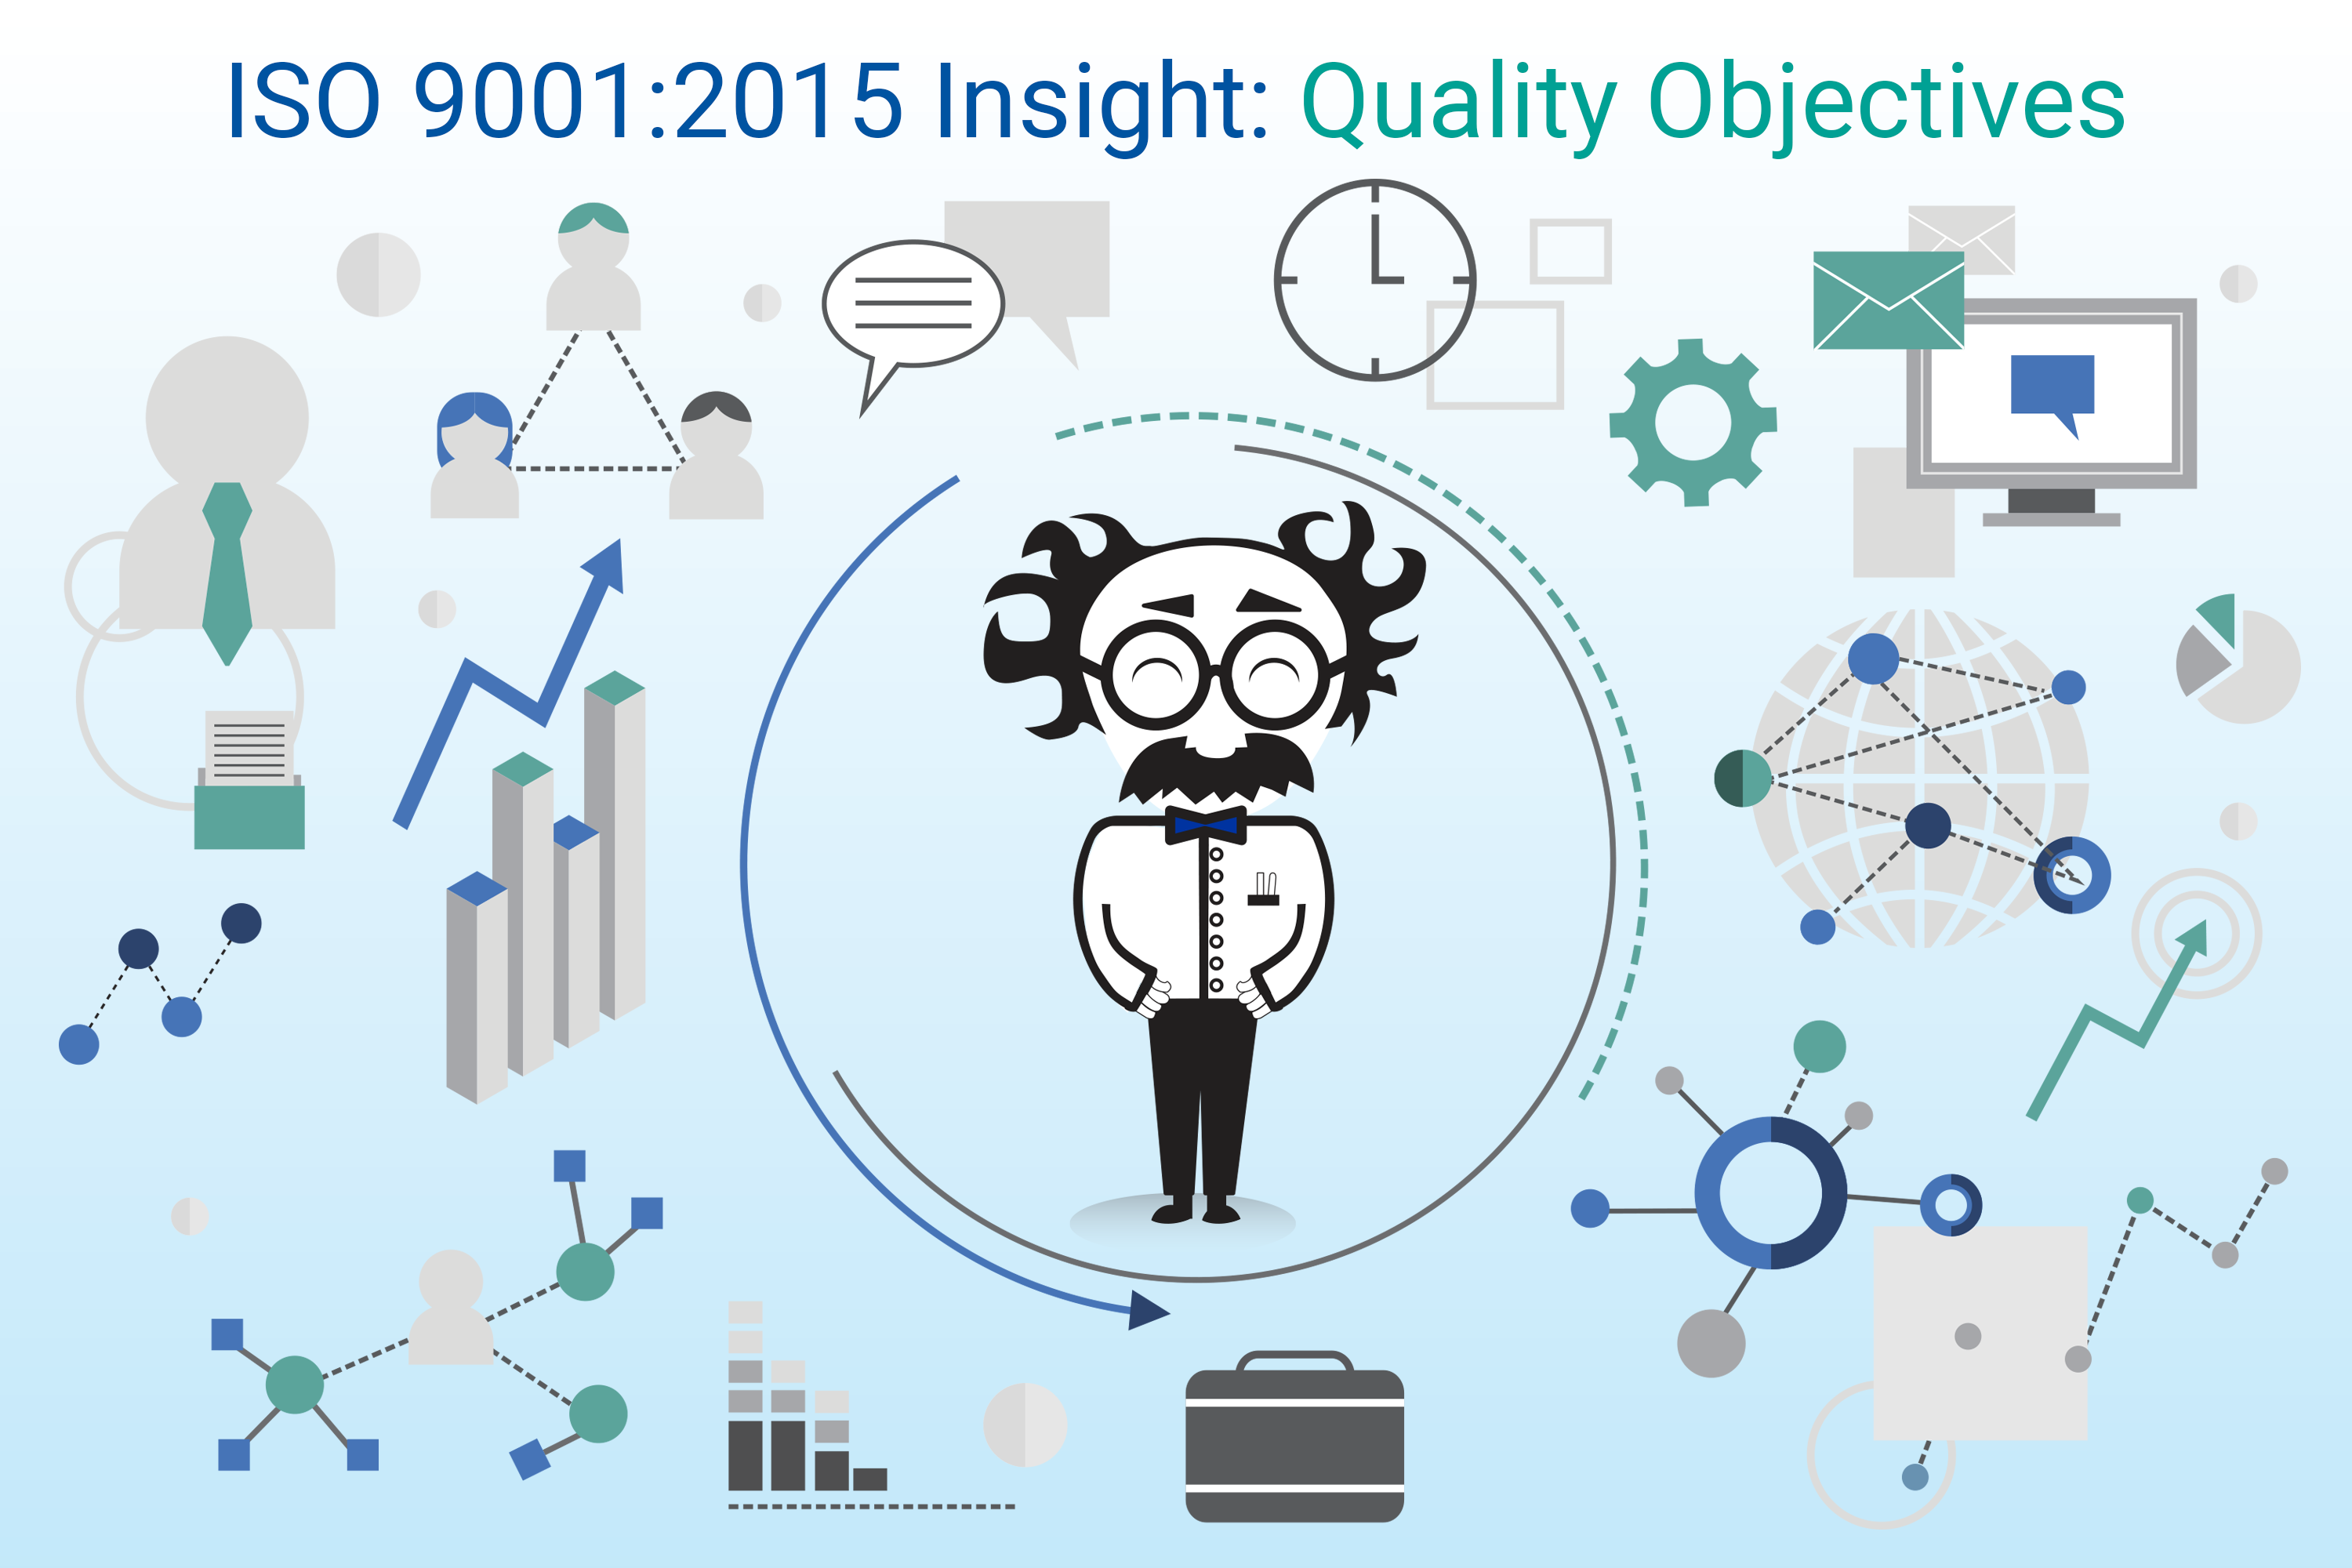 ISO 9001:2015 Insight: Clause 6.2 Quality Objectives